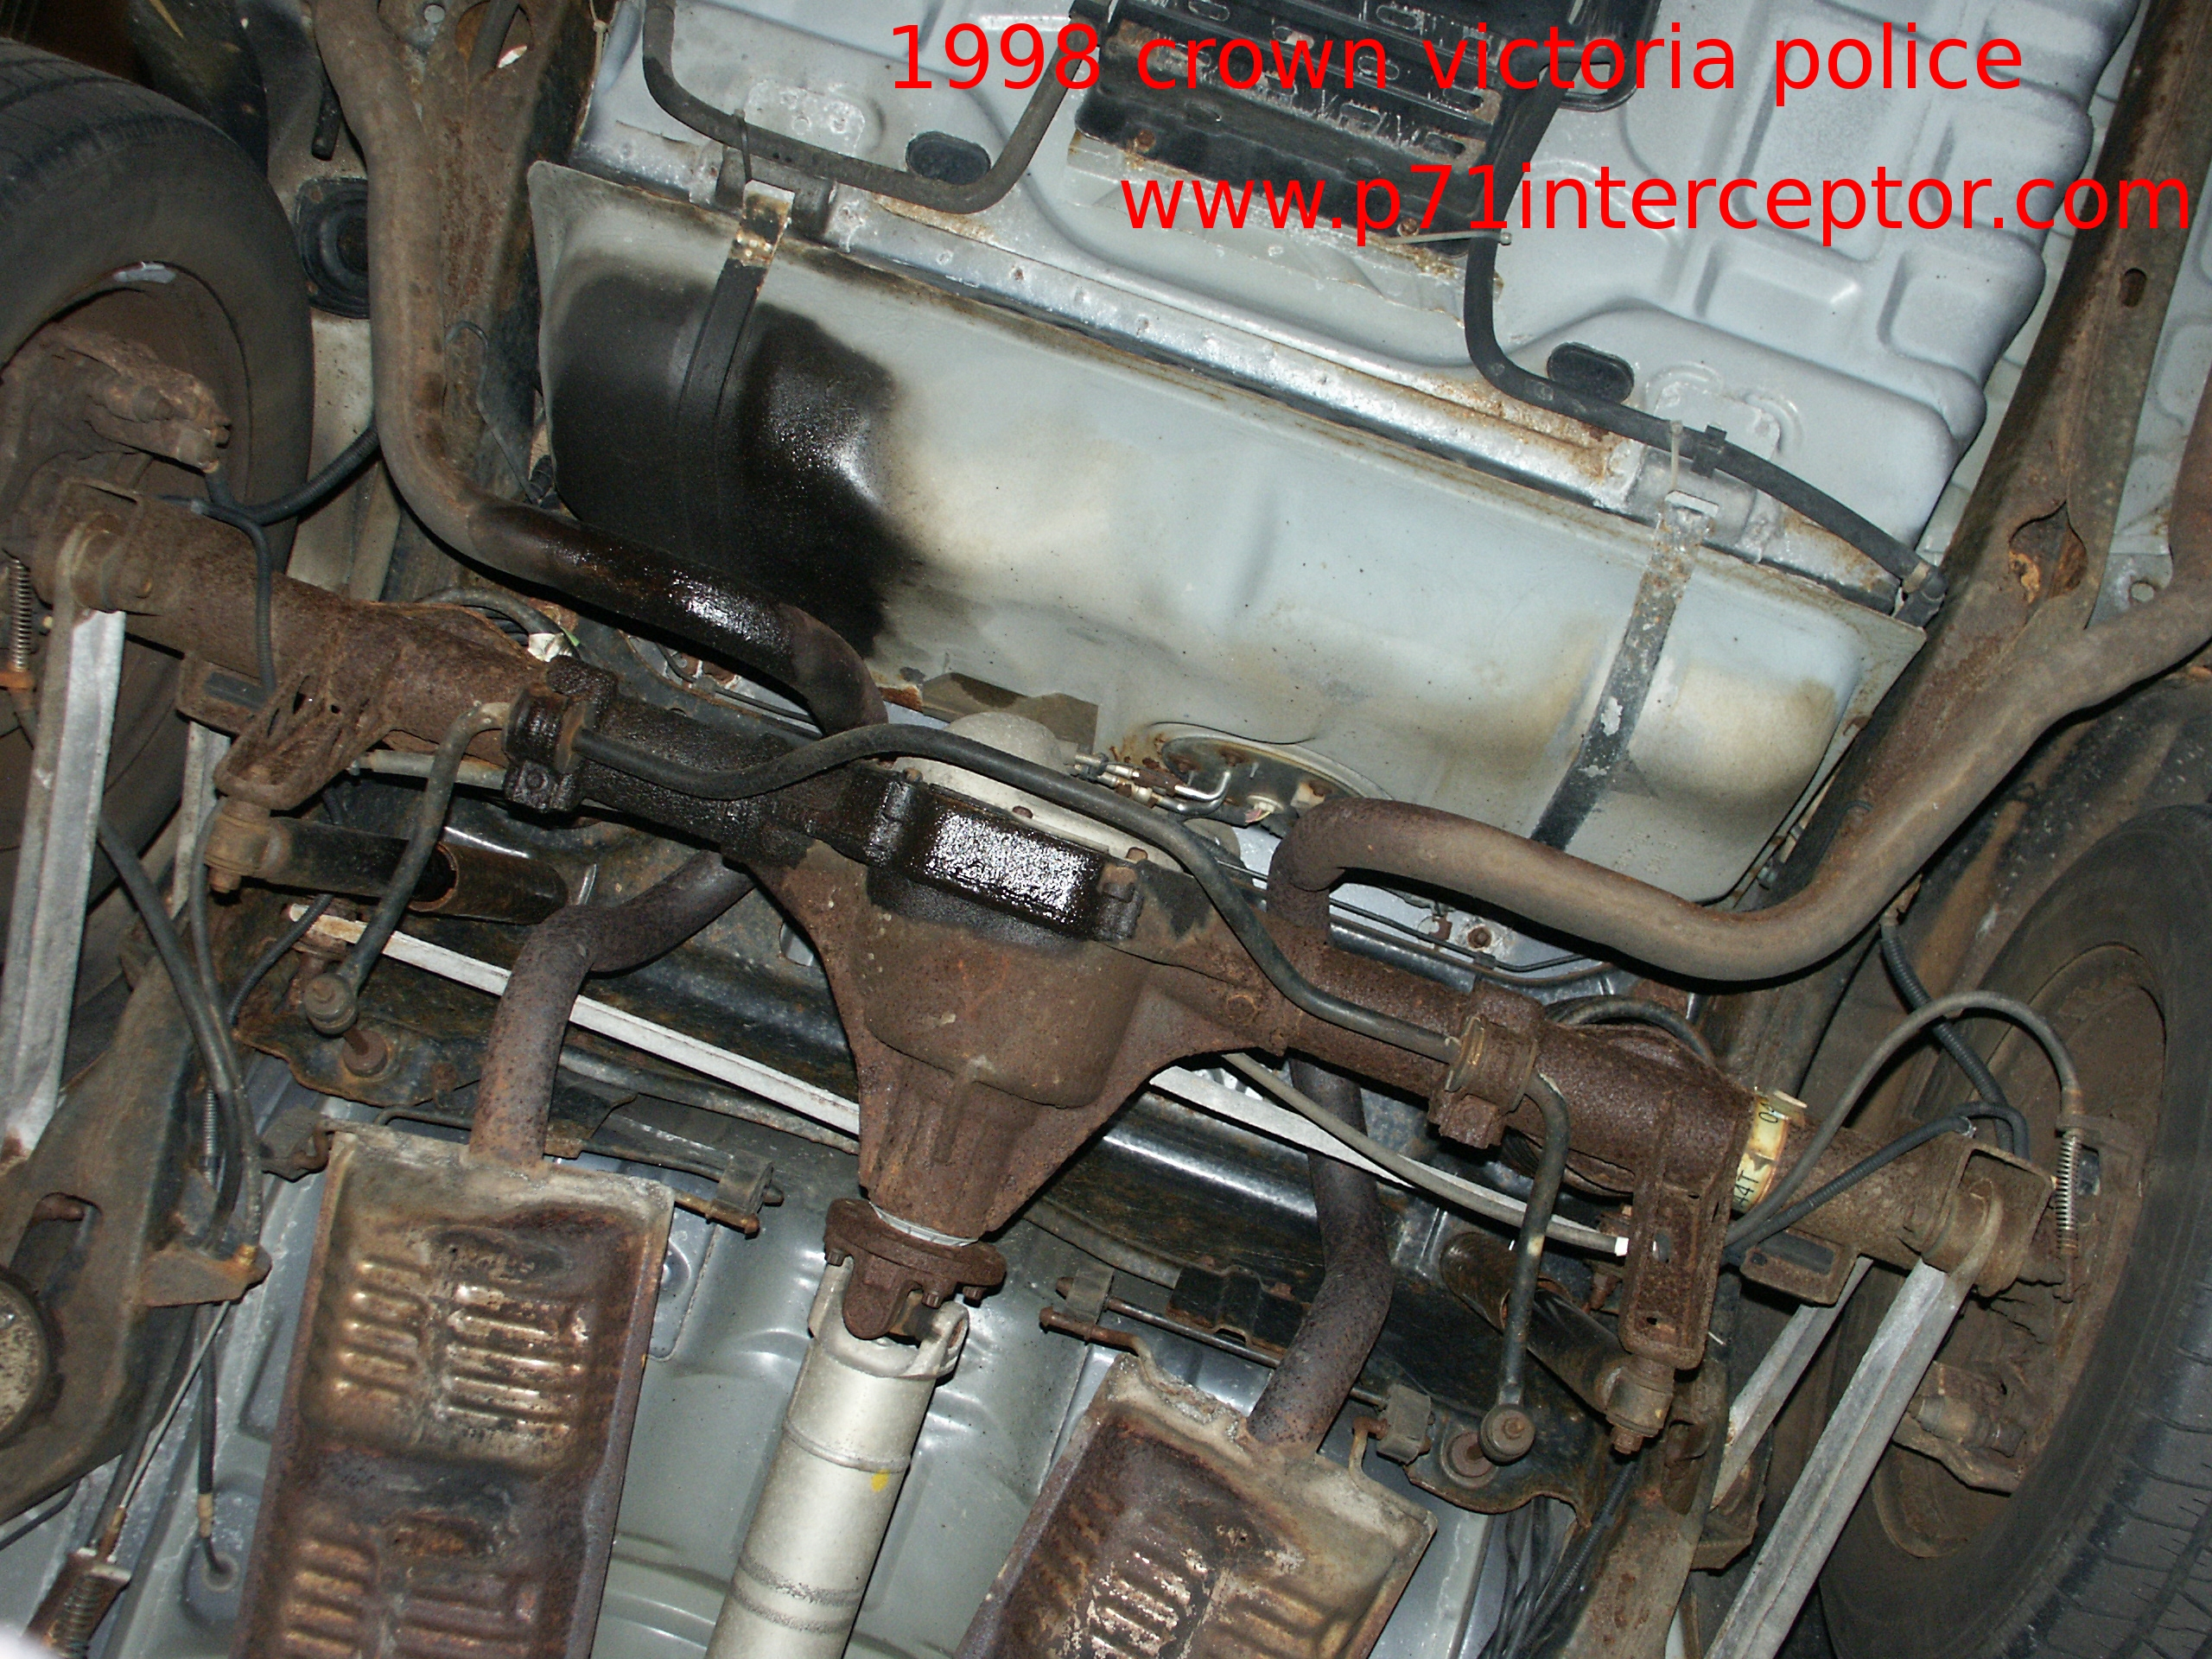 2007 navigator fuel filter crown victoria rear shock absorber installation 2007 jetta fuel filter